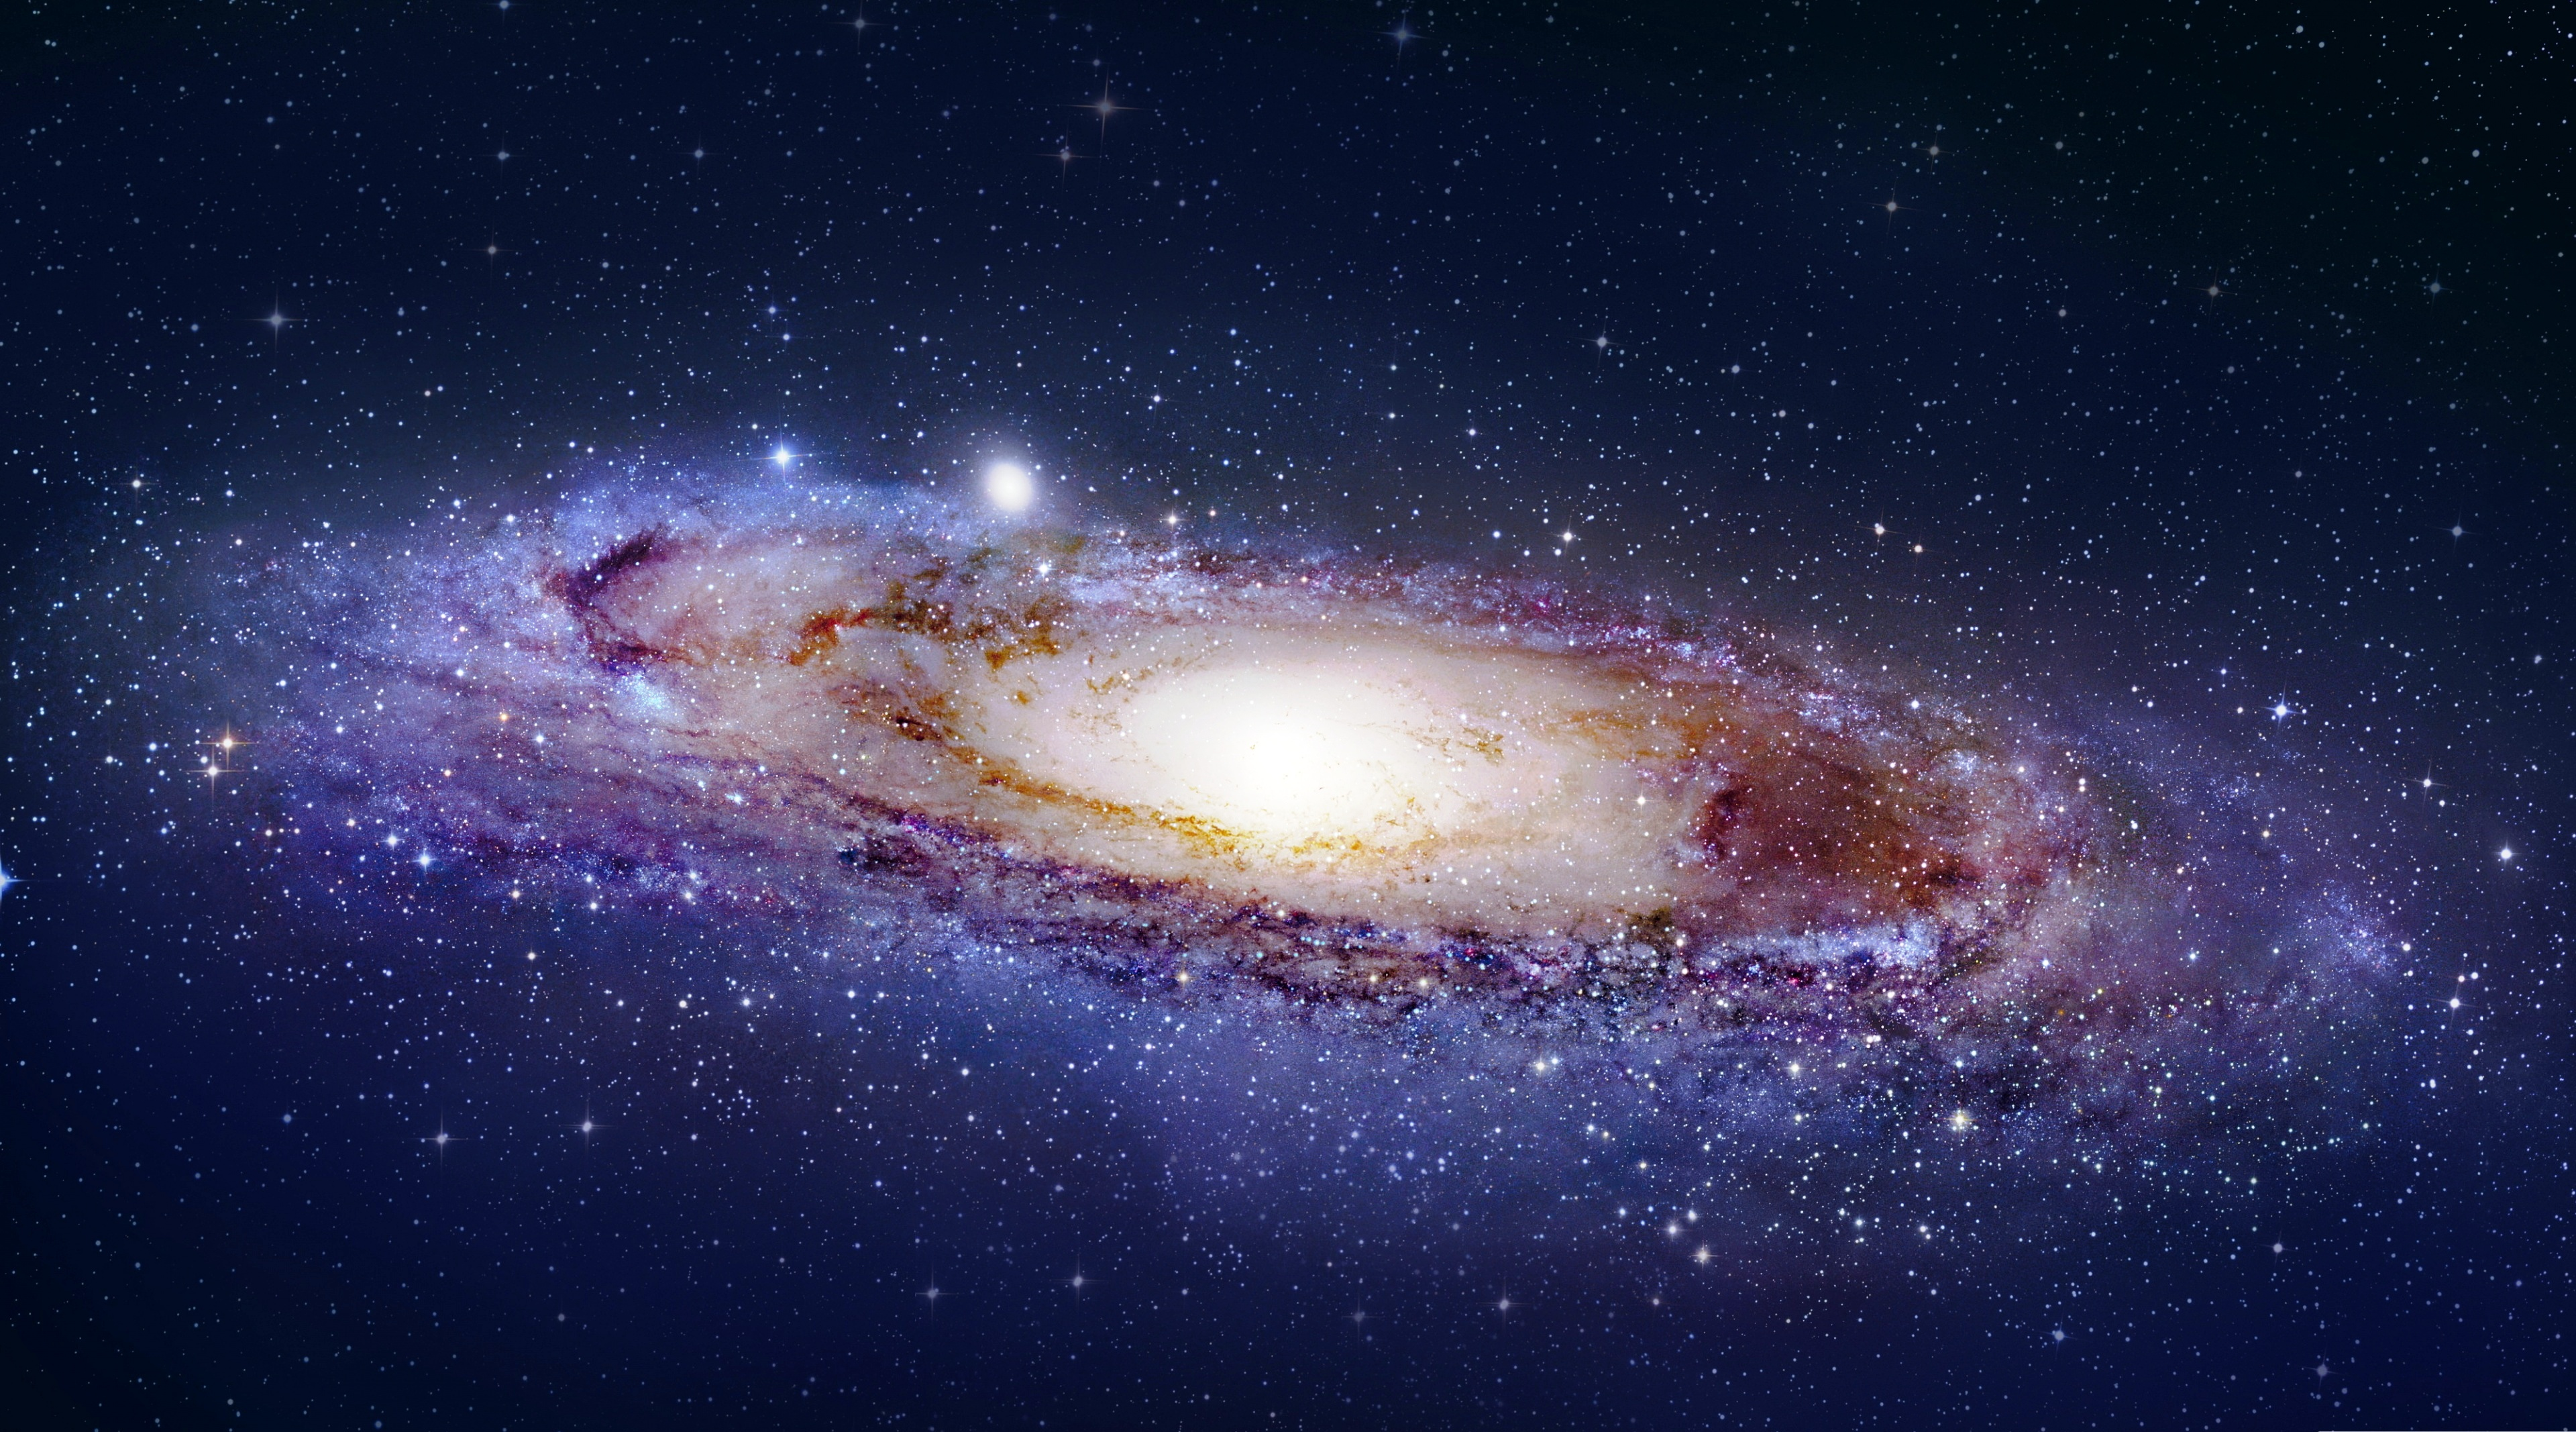 wallpaper.wiki-andromeda-galaxy-milky-way-pic-wpd001805 | wallpaper.wiki